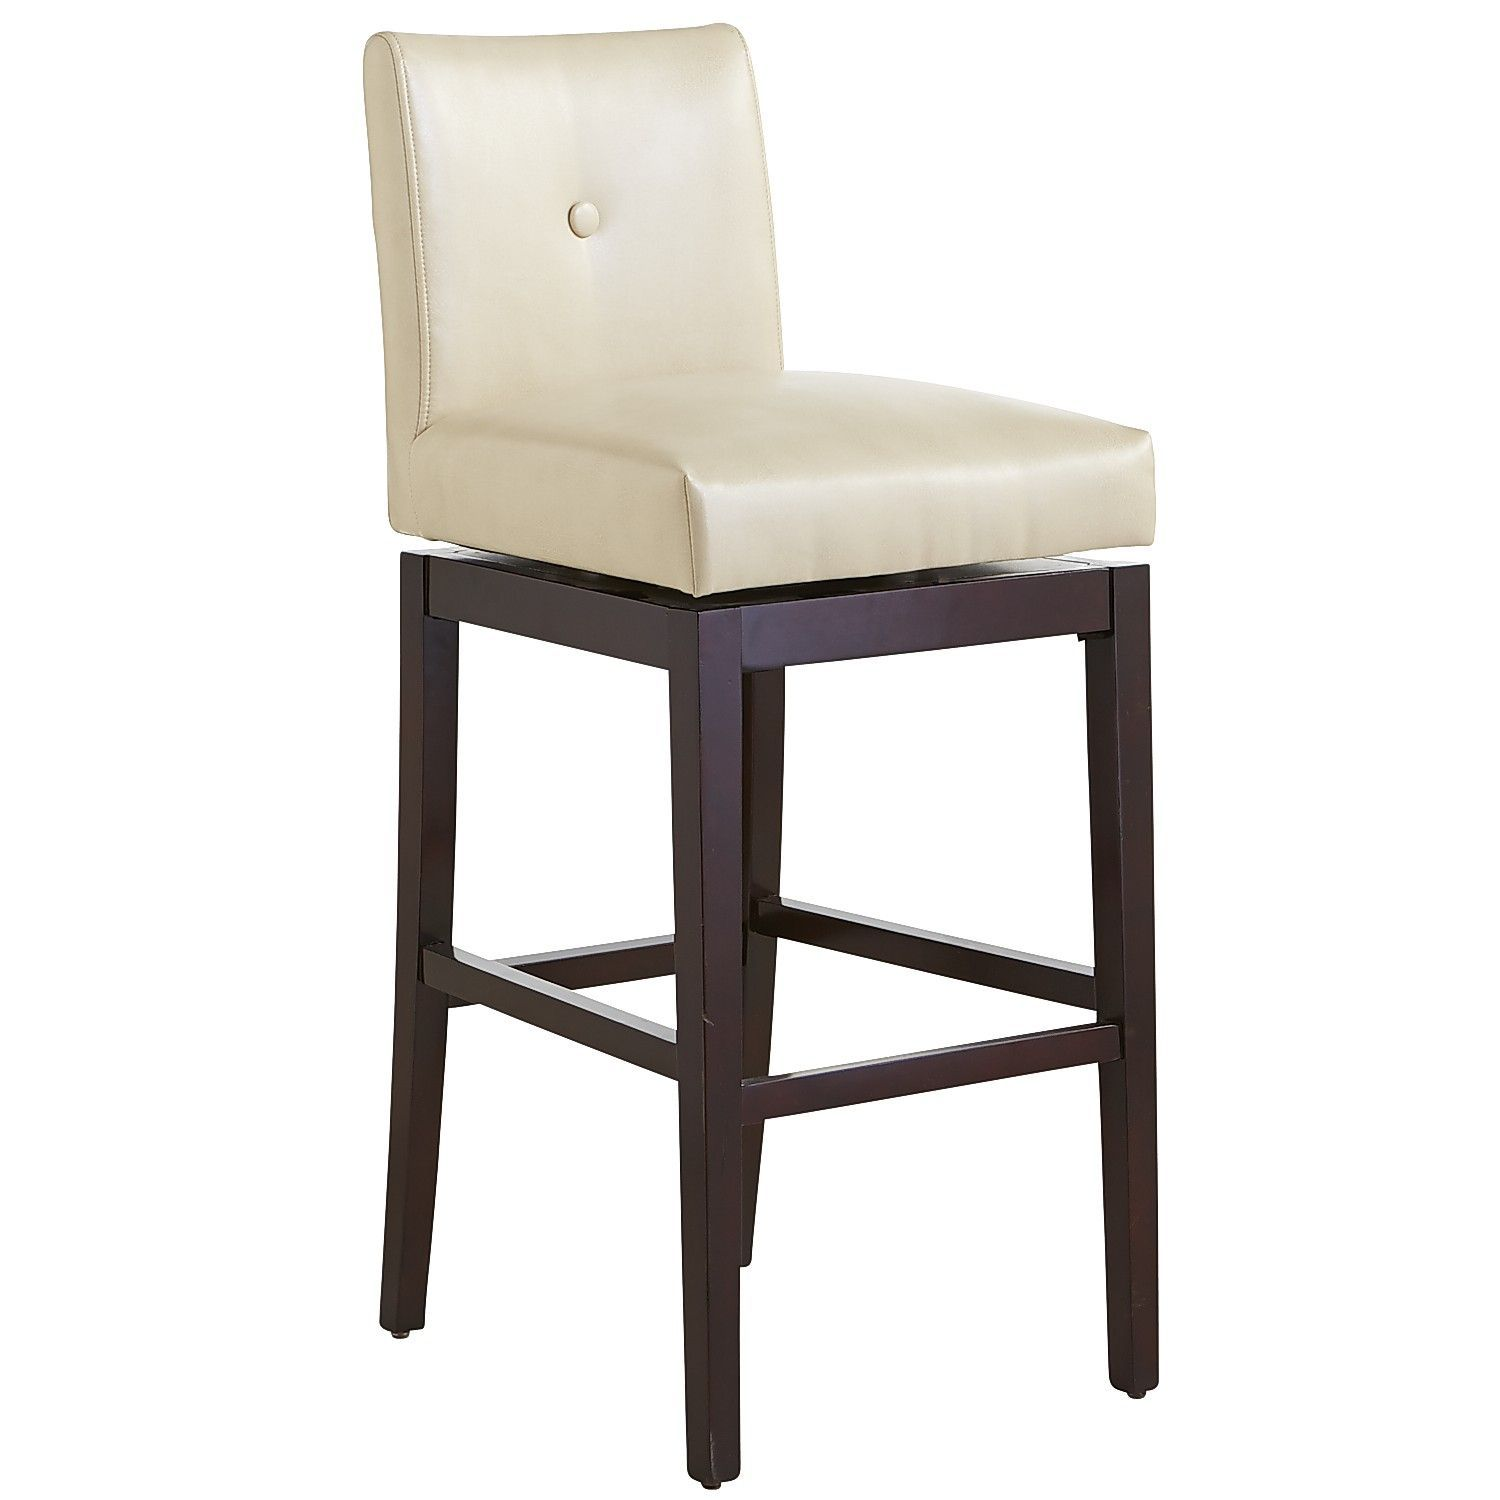 Terrific Mattie Low Back Swivel Bar Stool Smoke Has The Color Ibusinesslaw Wood Chair Design Ideas Ibusinesslaworg